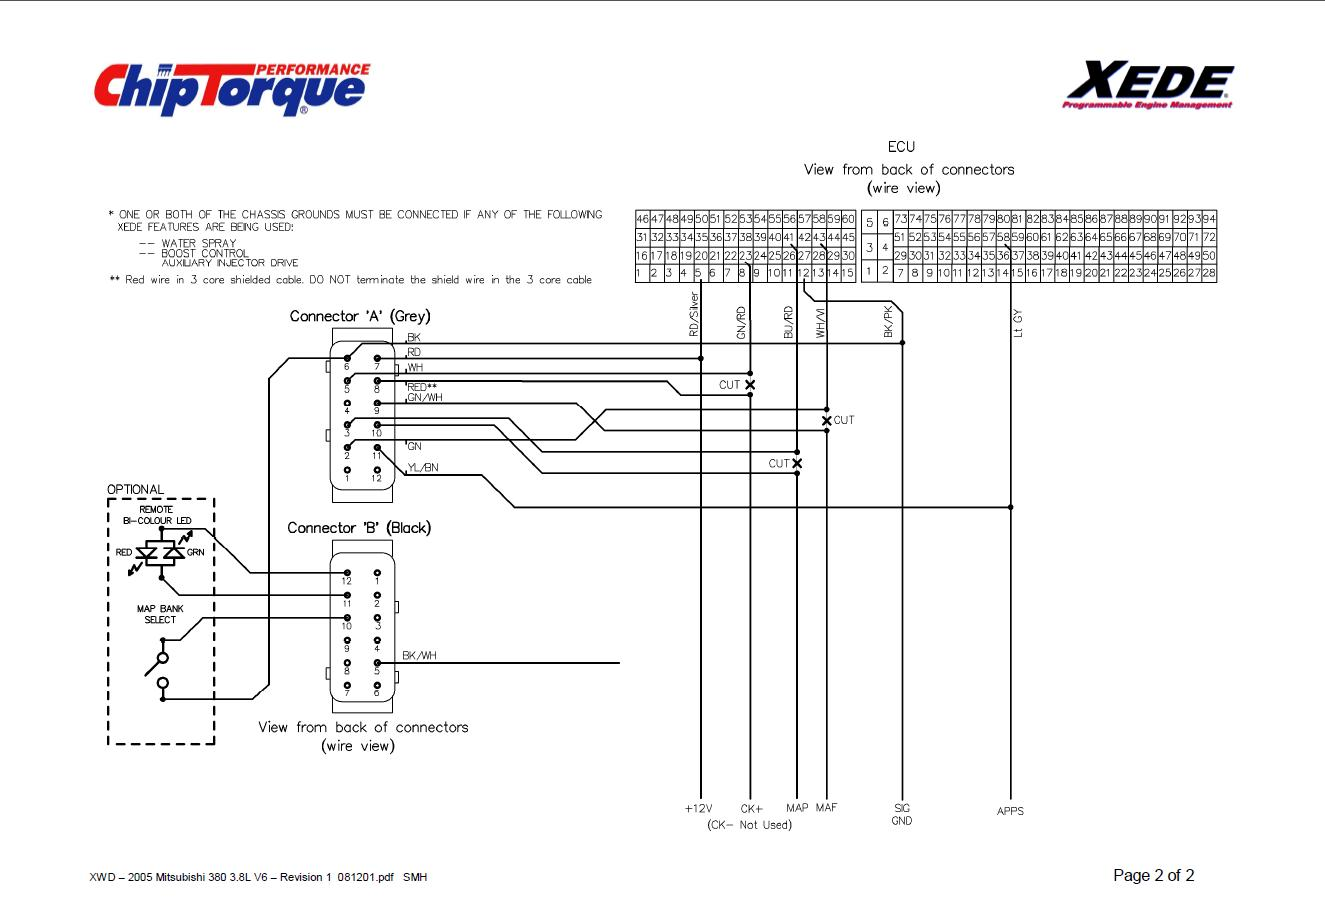 perfect power smt6 wiring diagram